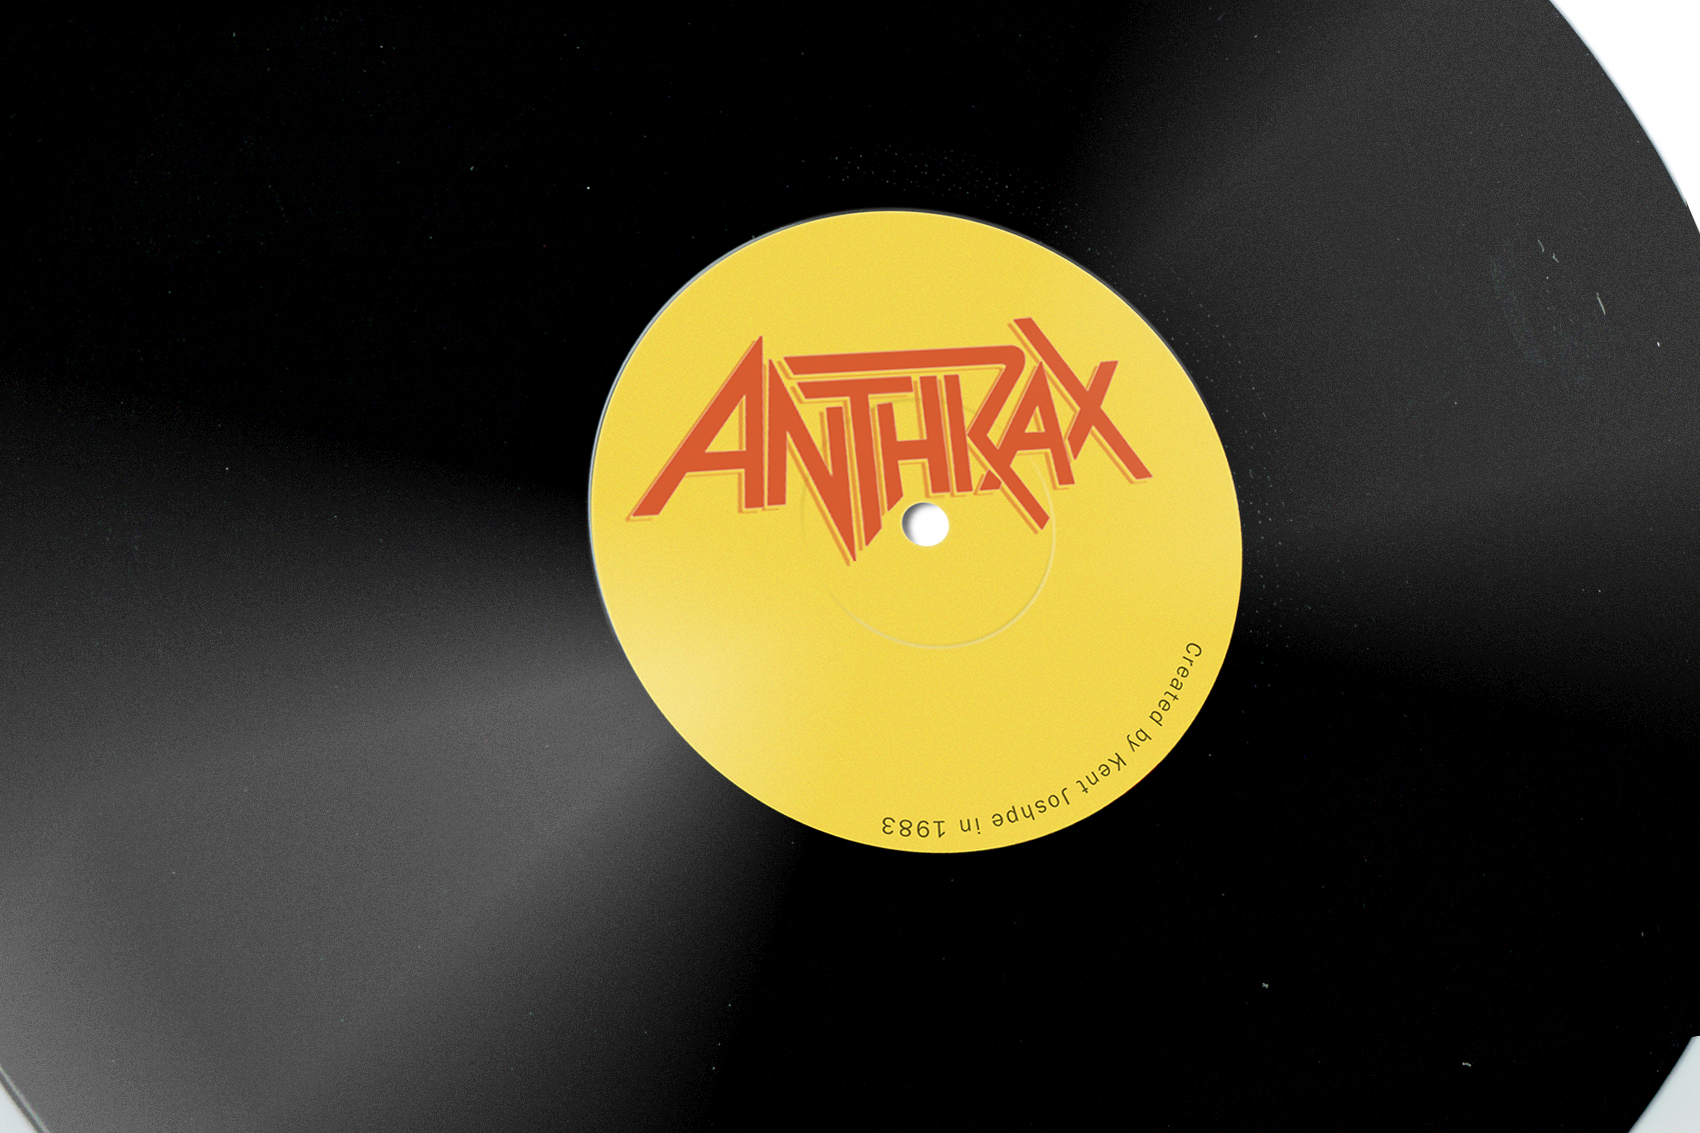 Anthrax on Record